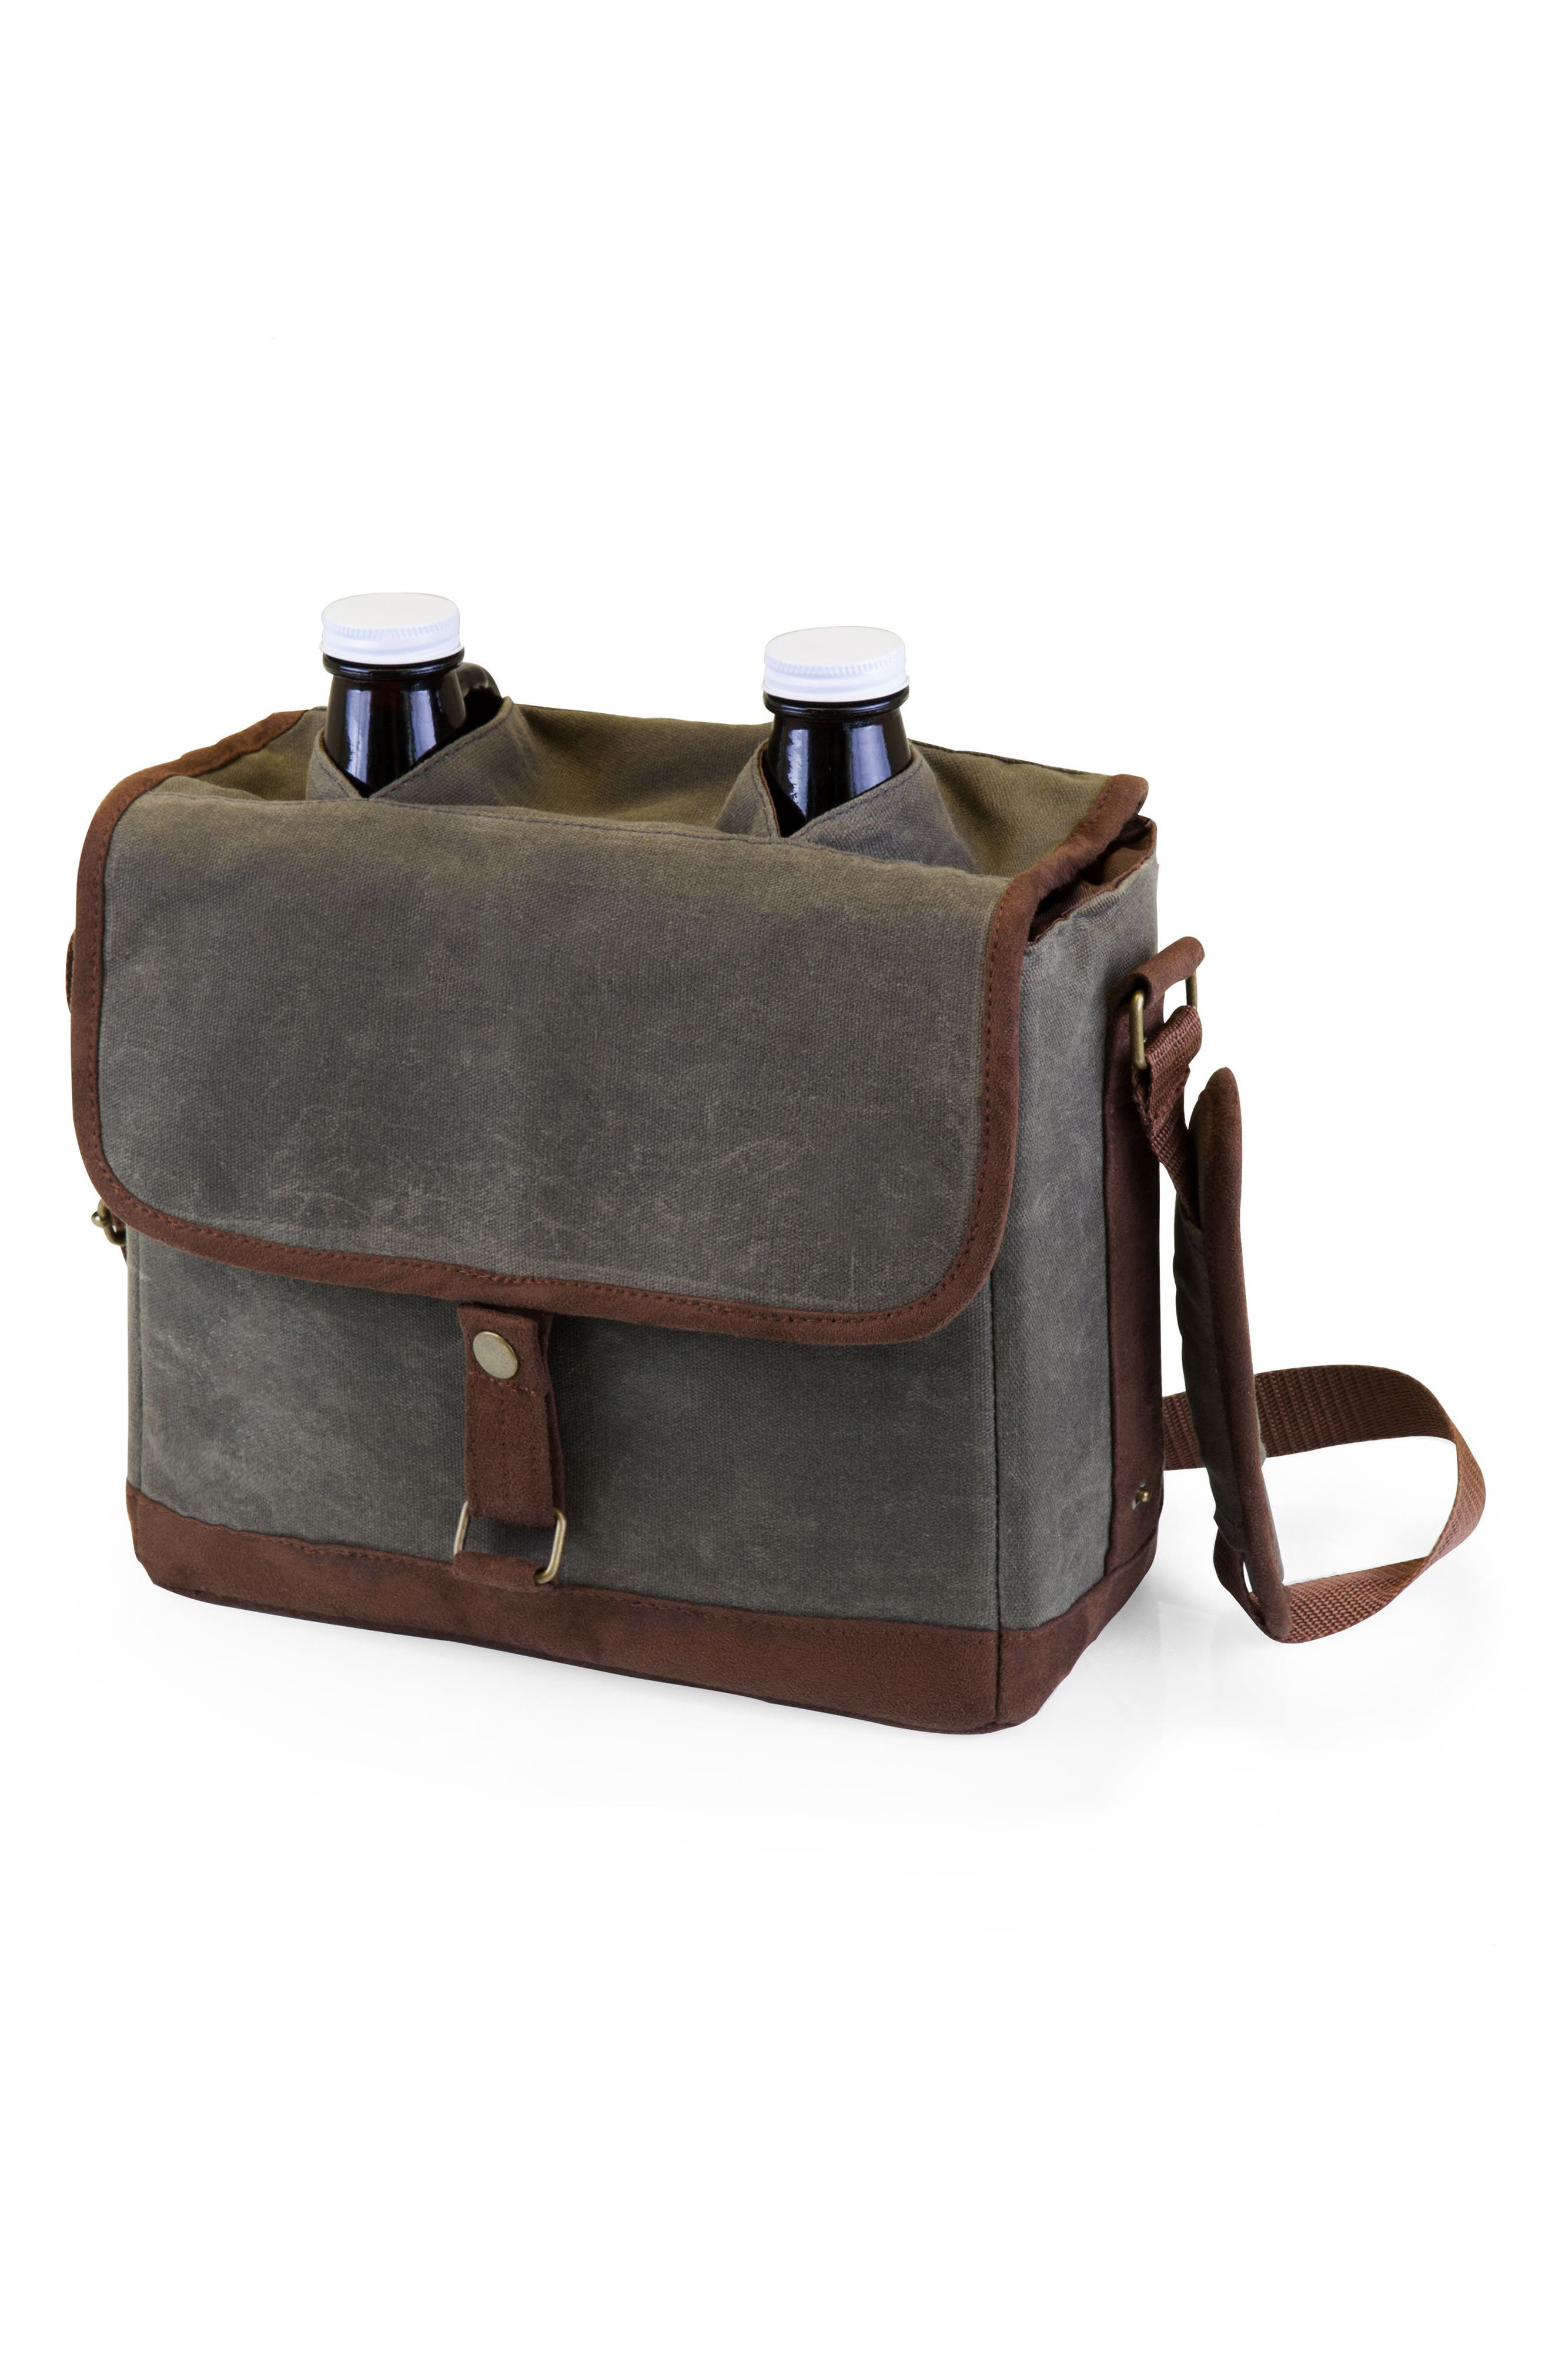 Insulated Double Growler Tote & Growlers,                             Main thumbnail 1, color,                             301